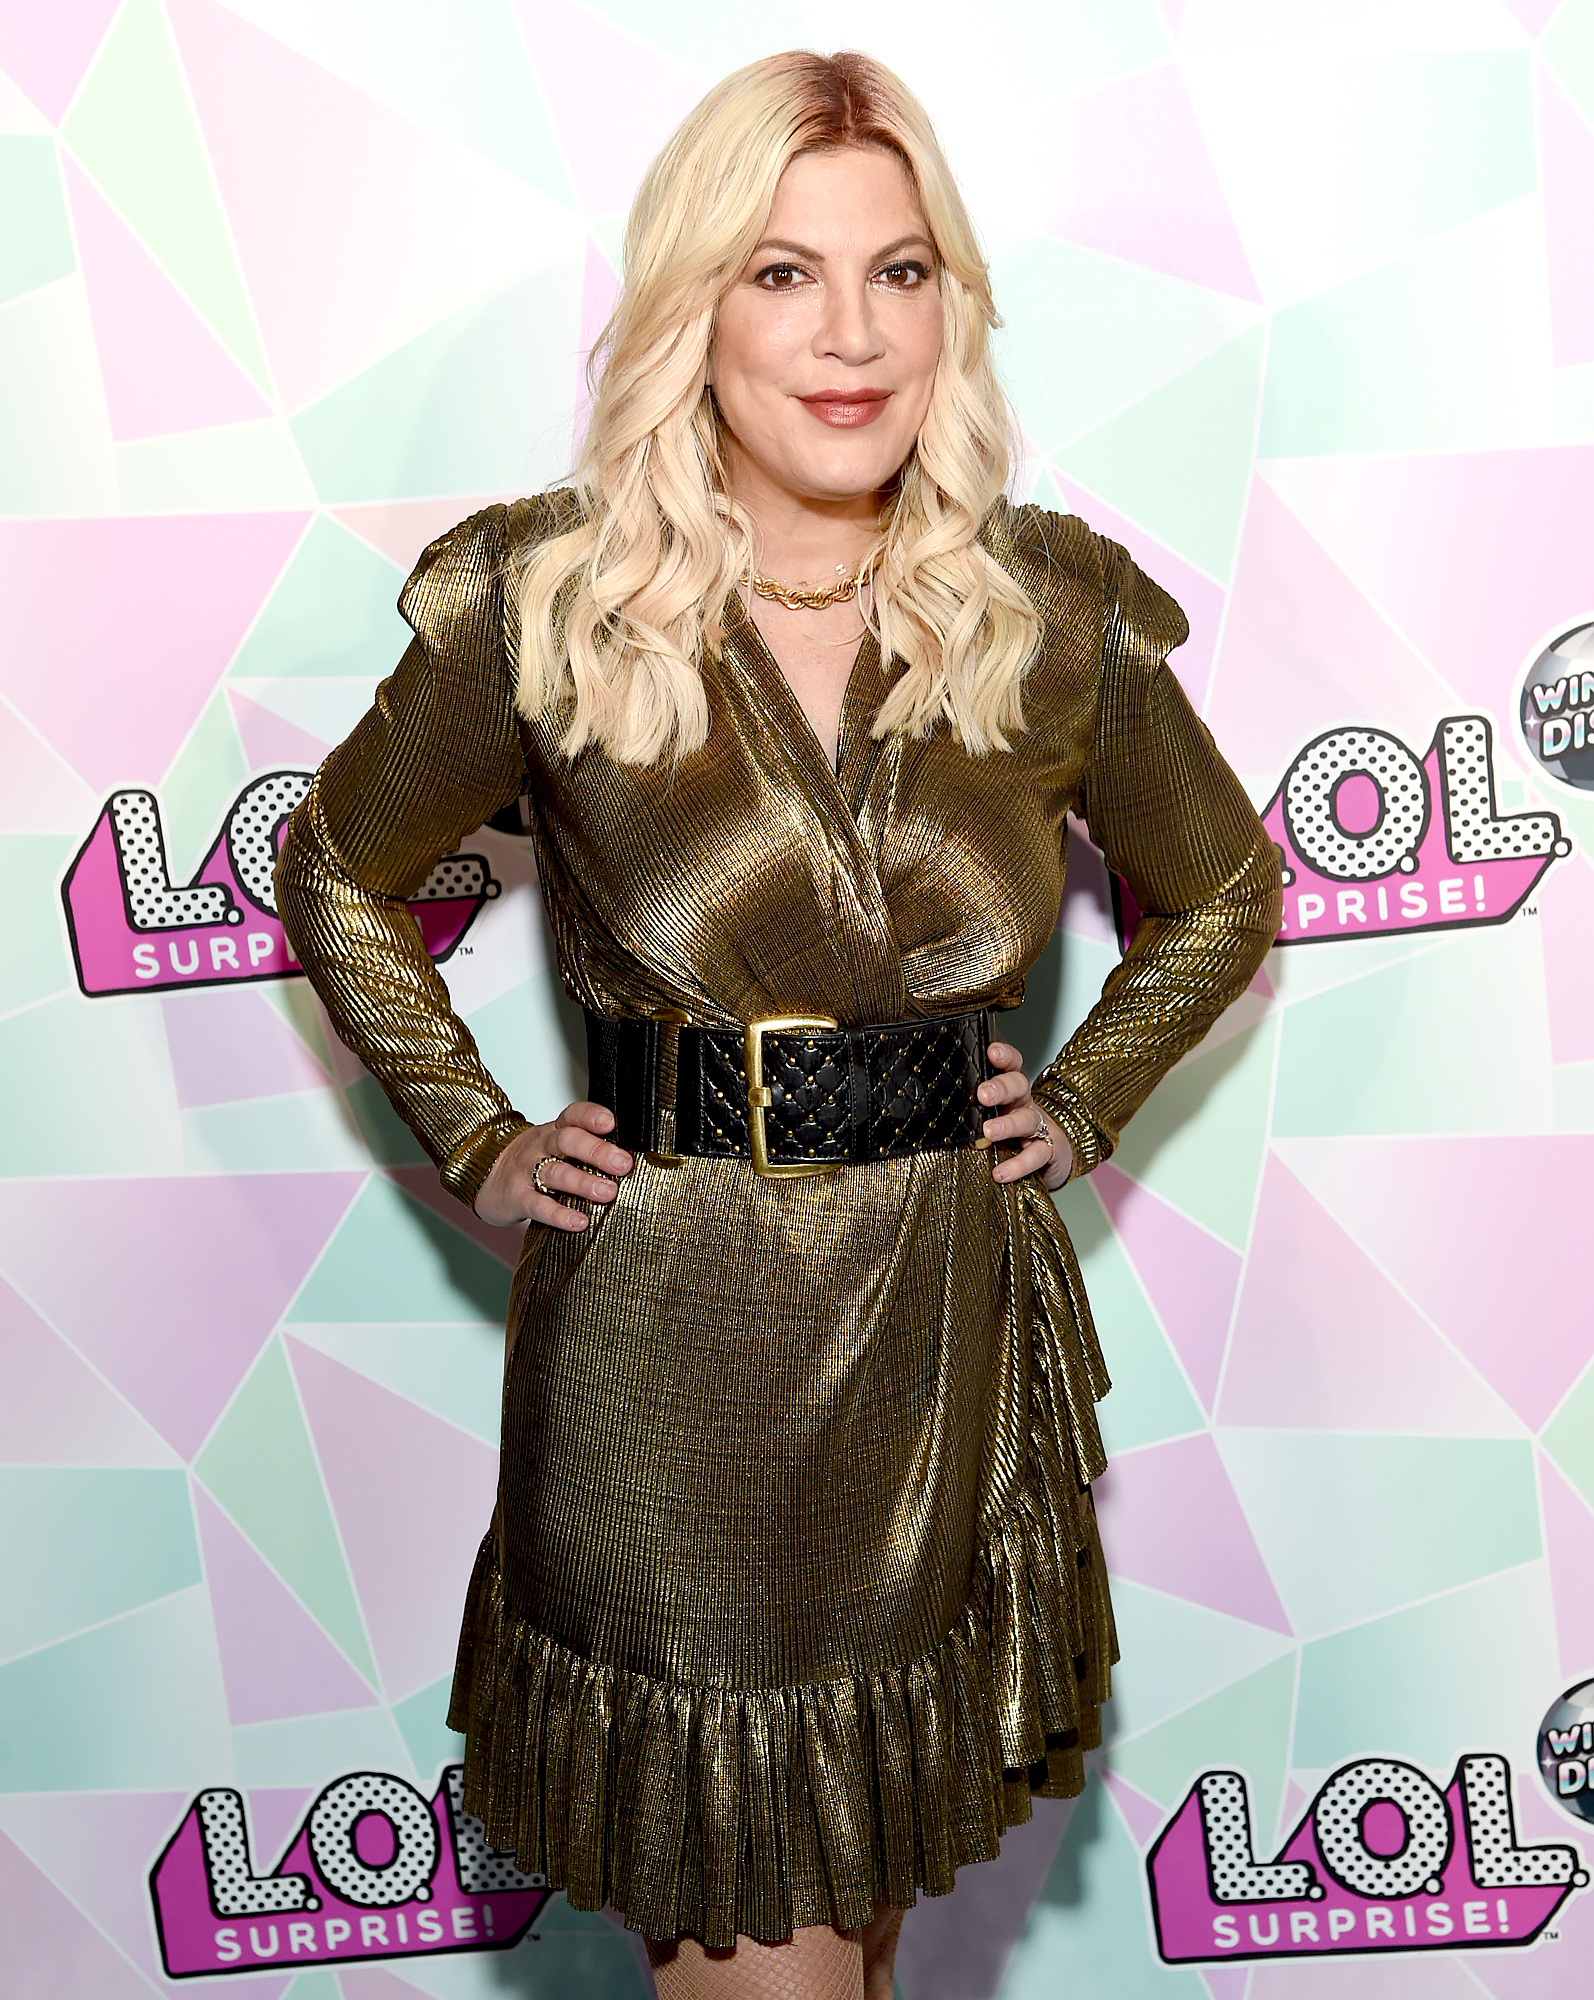 Tori Spelling Says 'BH90210' Cast Thinks About Late Luke Perry 'Every Day'